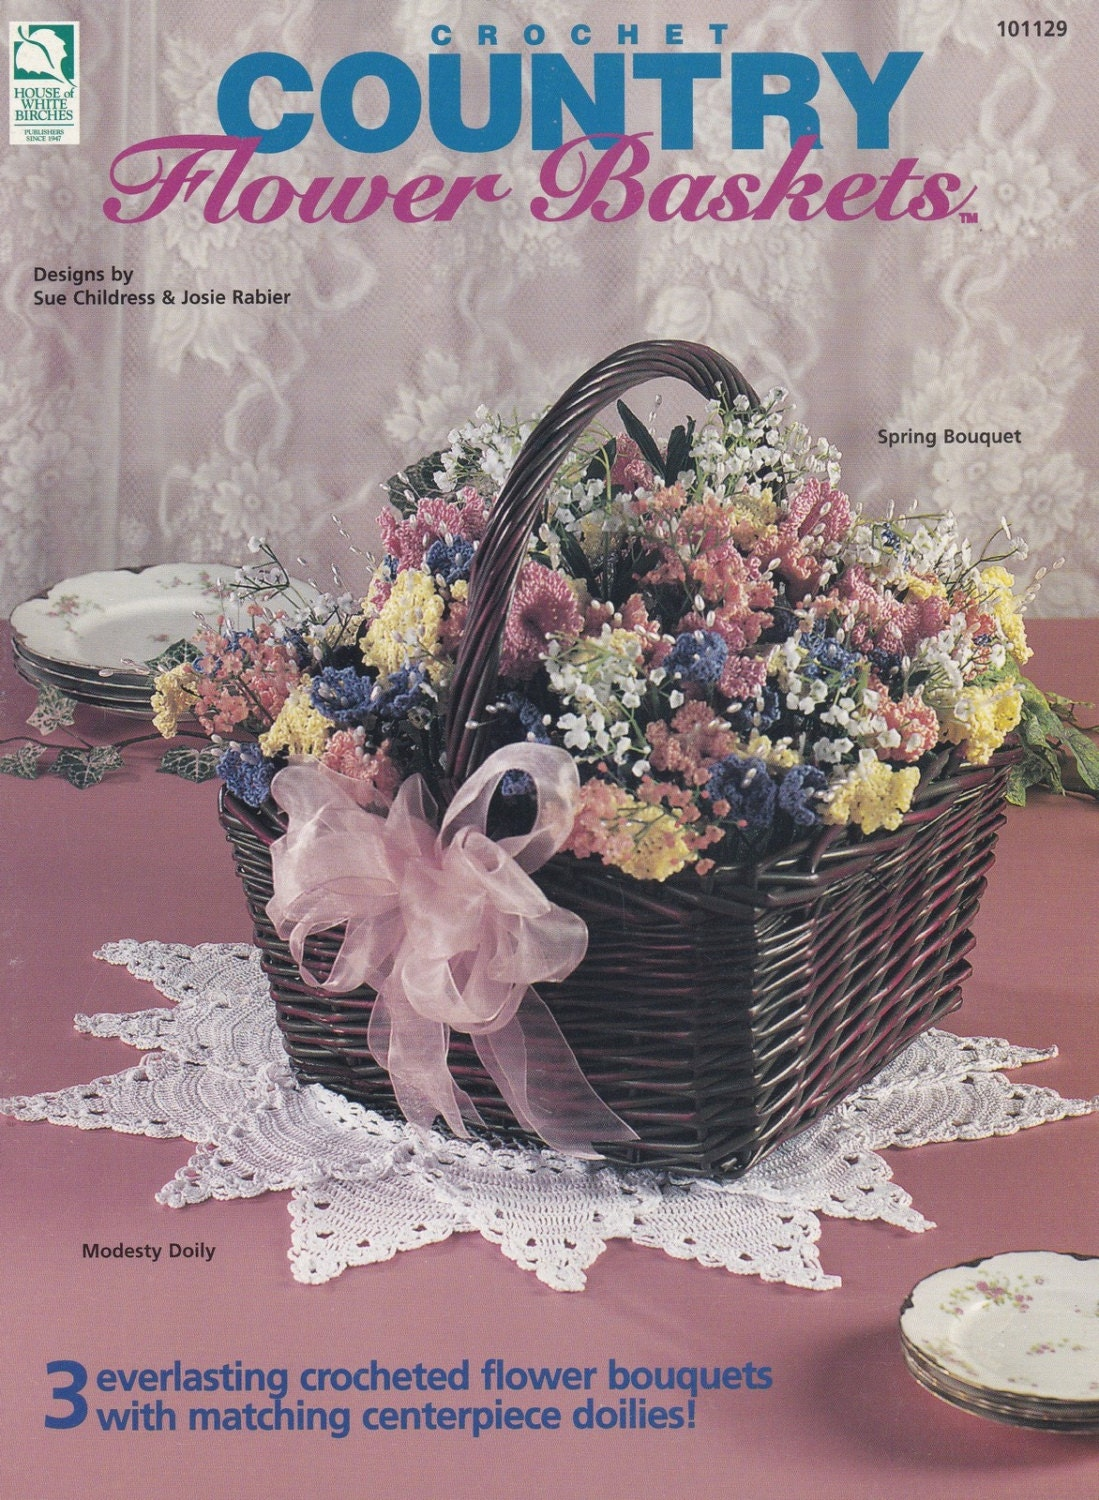 Country Flower Baskets Home Decor Crochet Pattern House Of Etsy